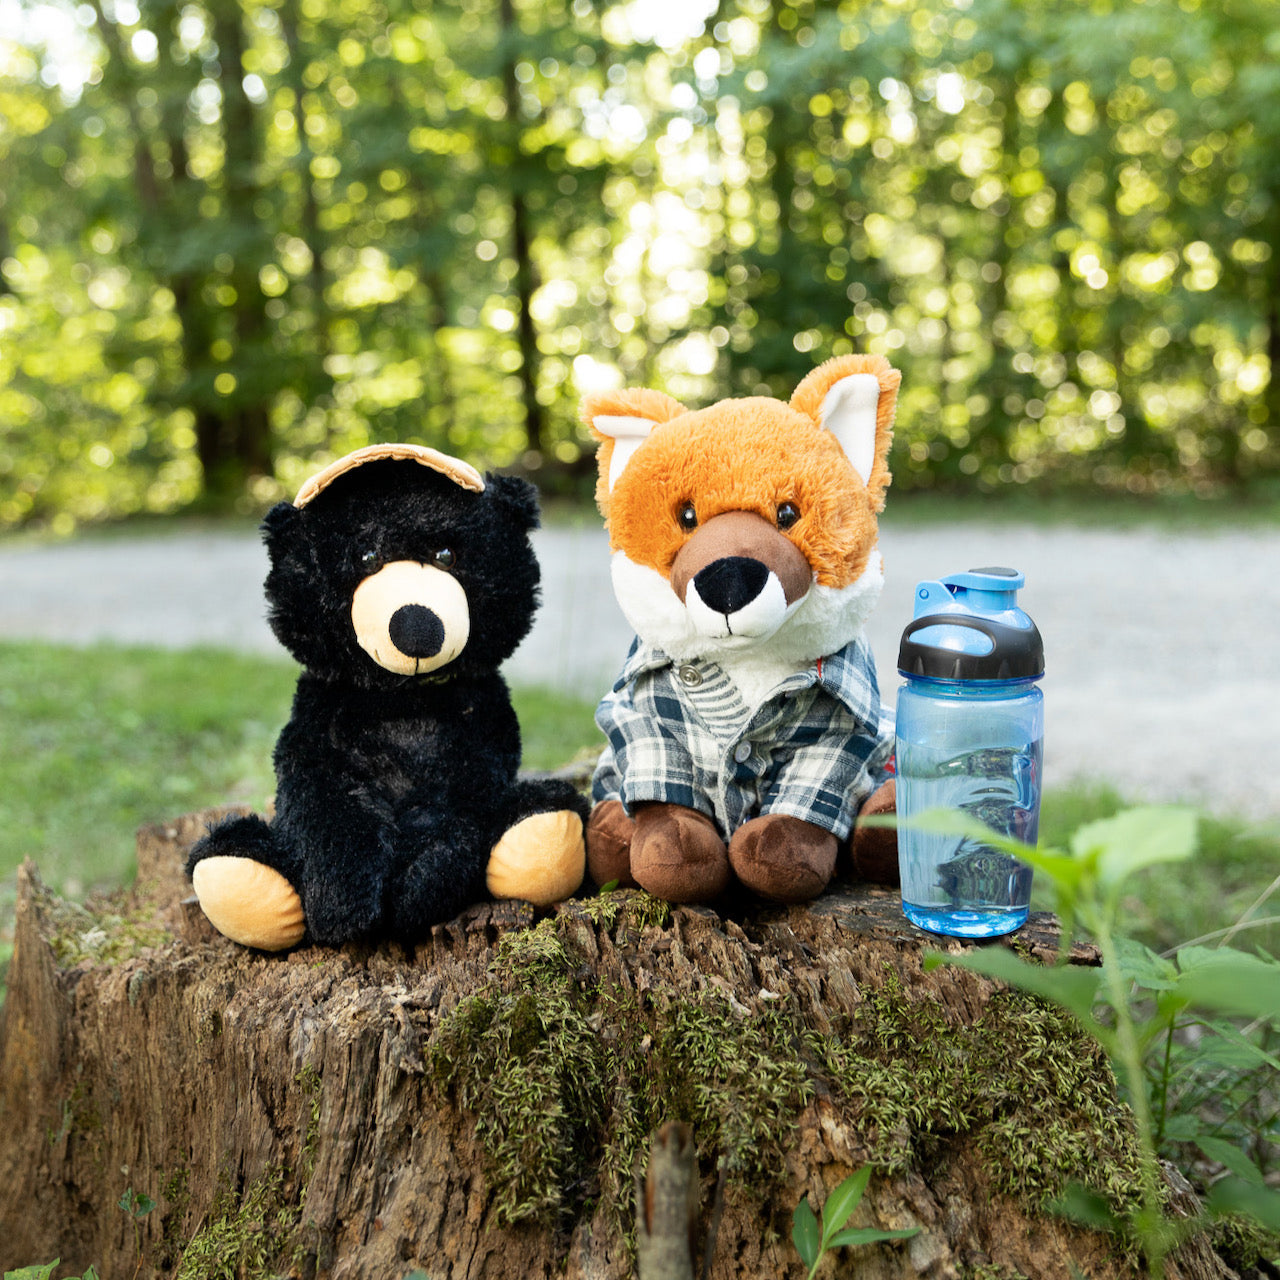 A pair of stuffed animals by SendAFriend backdropped by a forest.